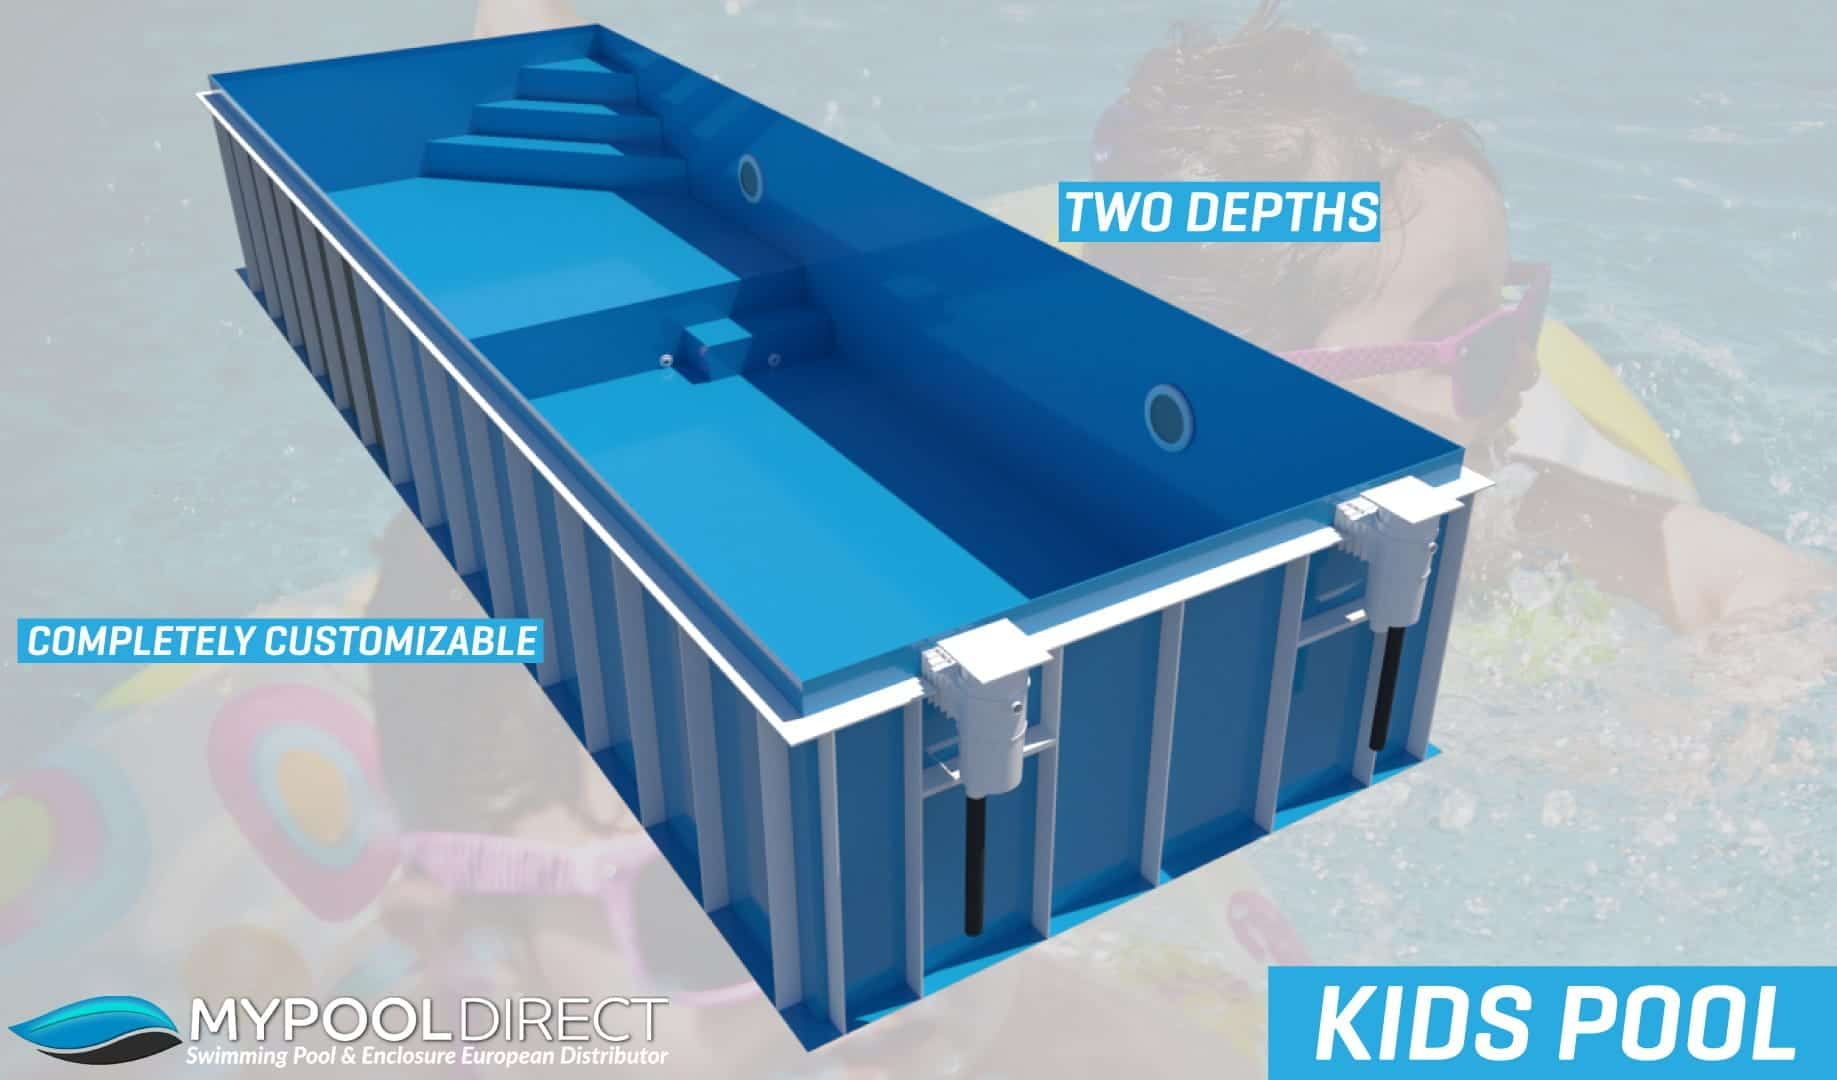 bespoke dura polymer 2 depths kids pool